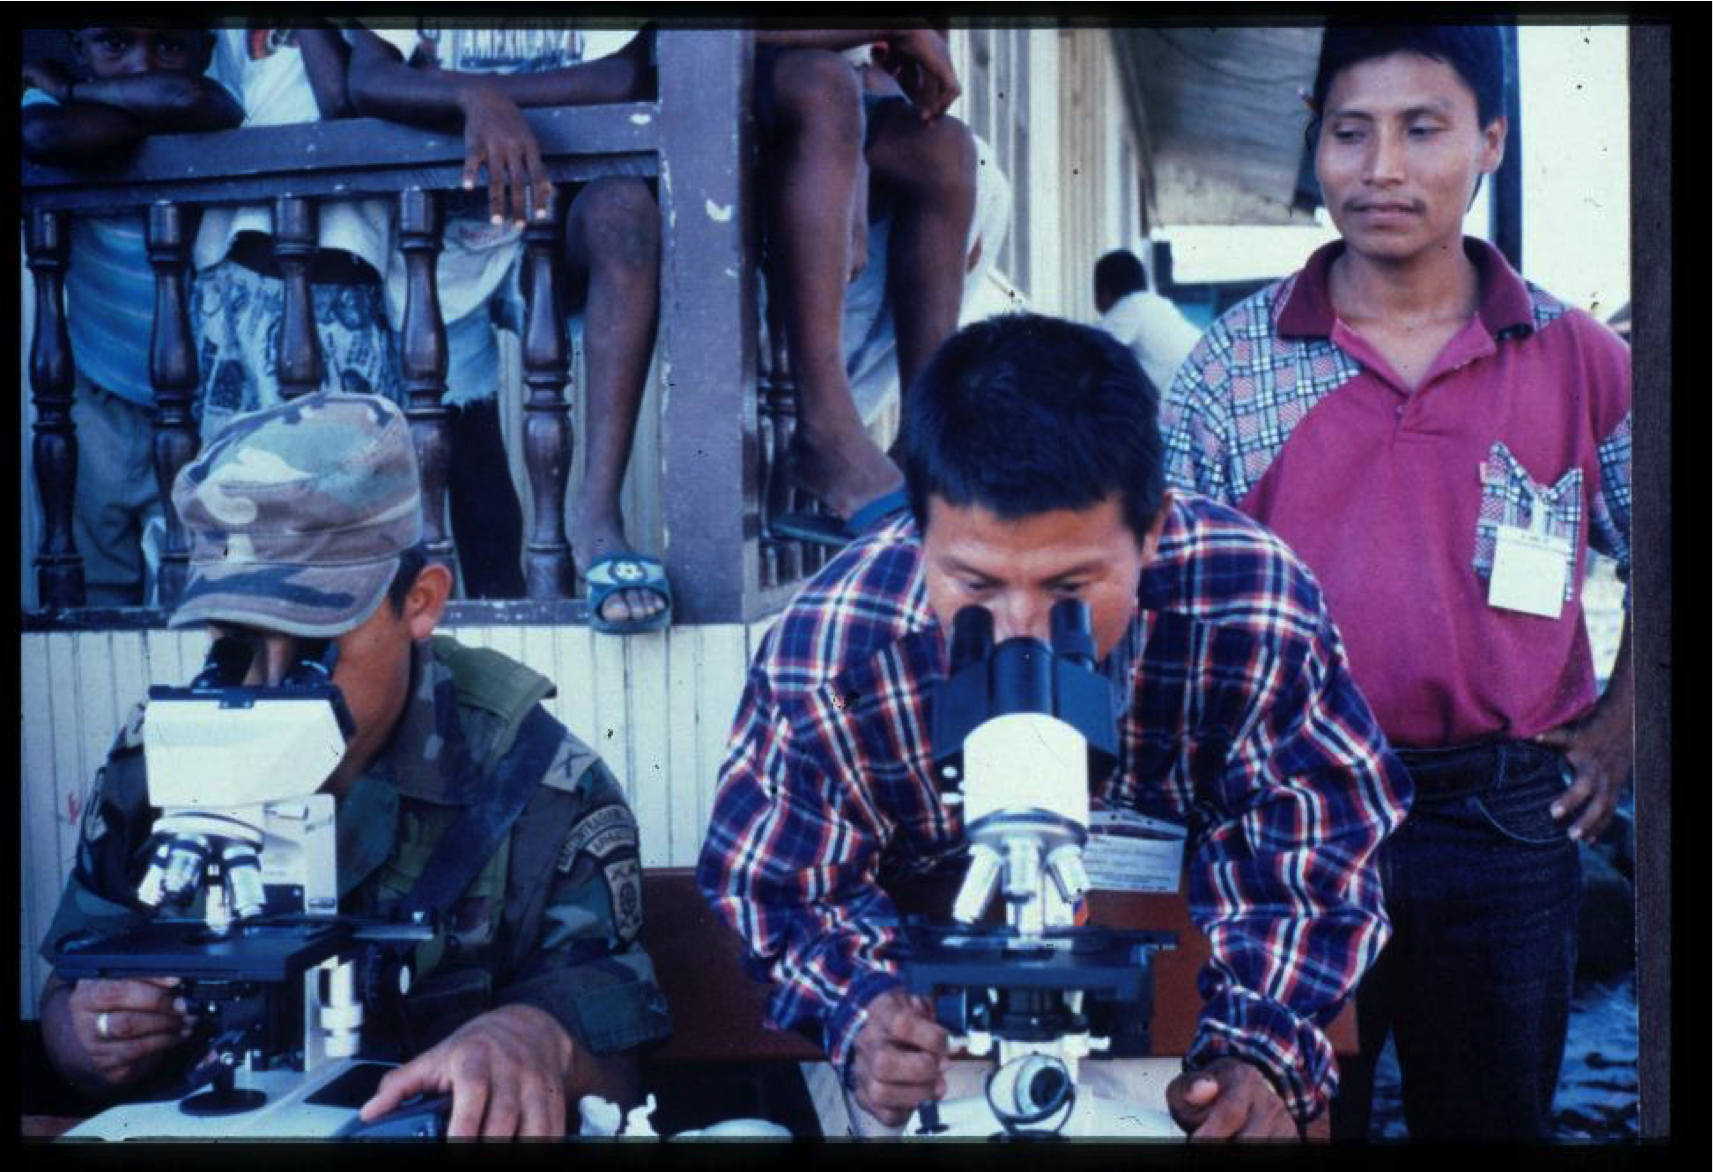 Our malaria workers examine a practice slide. A passing soldier wouldn't miss the fun